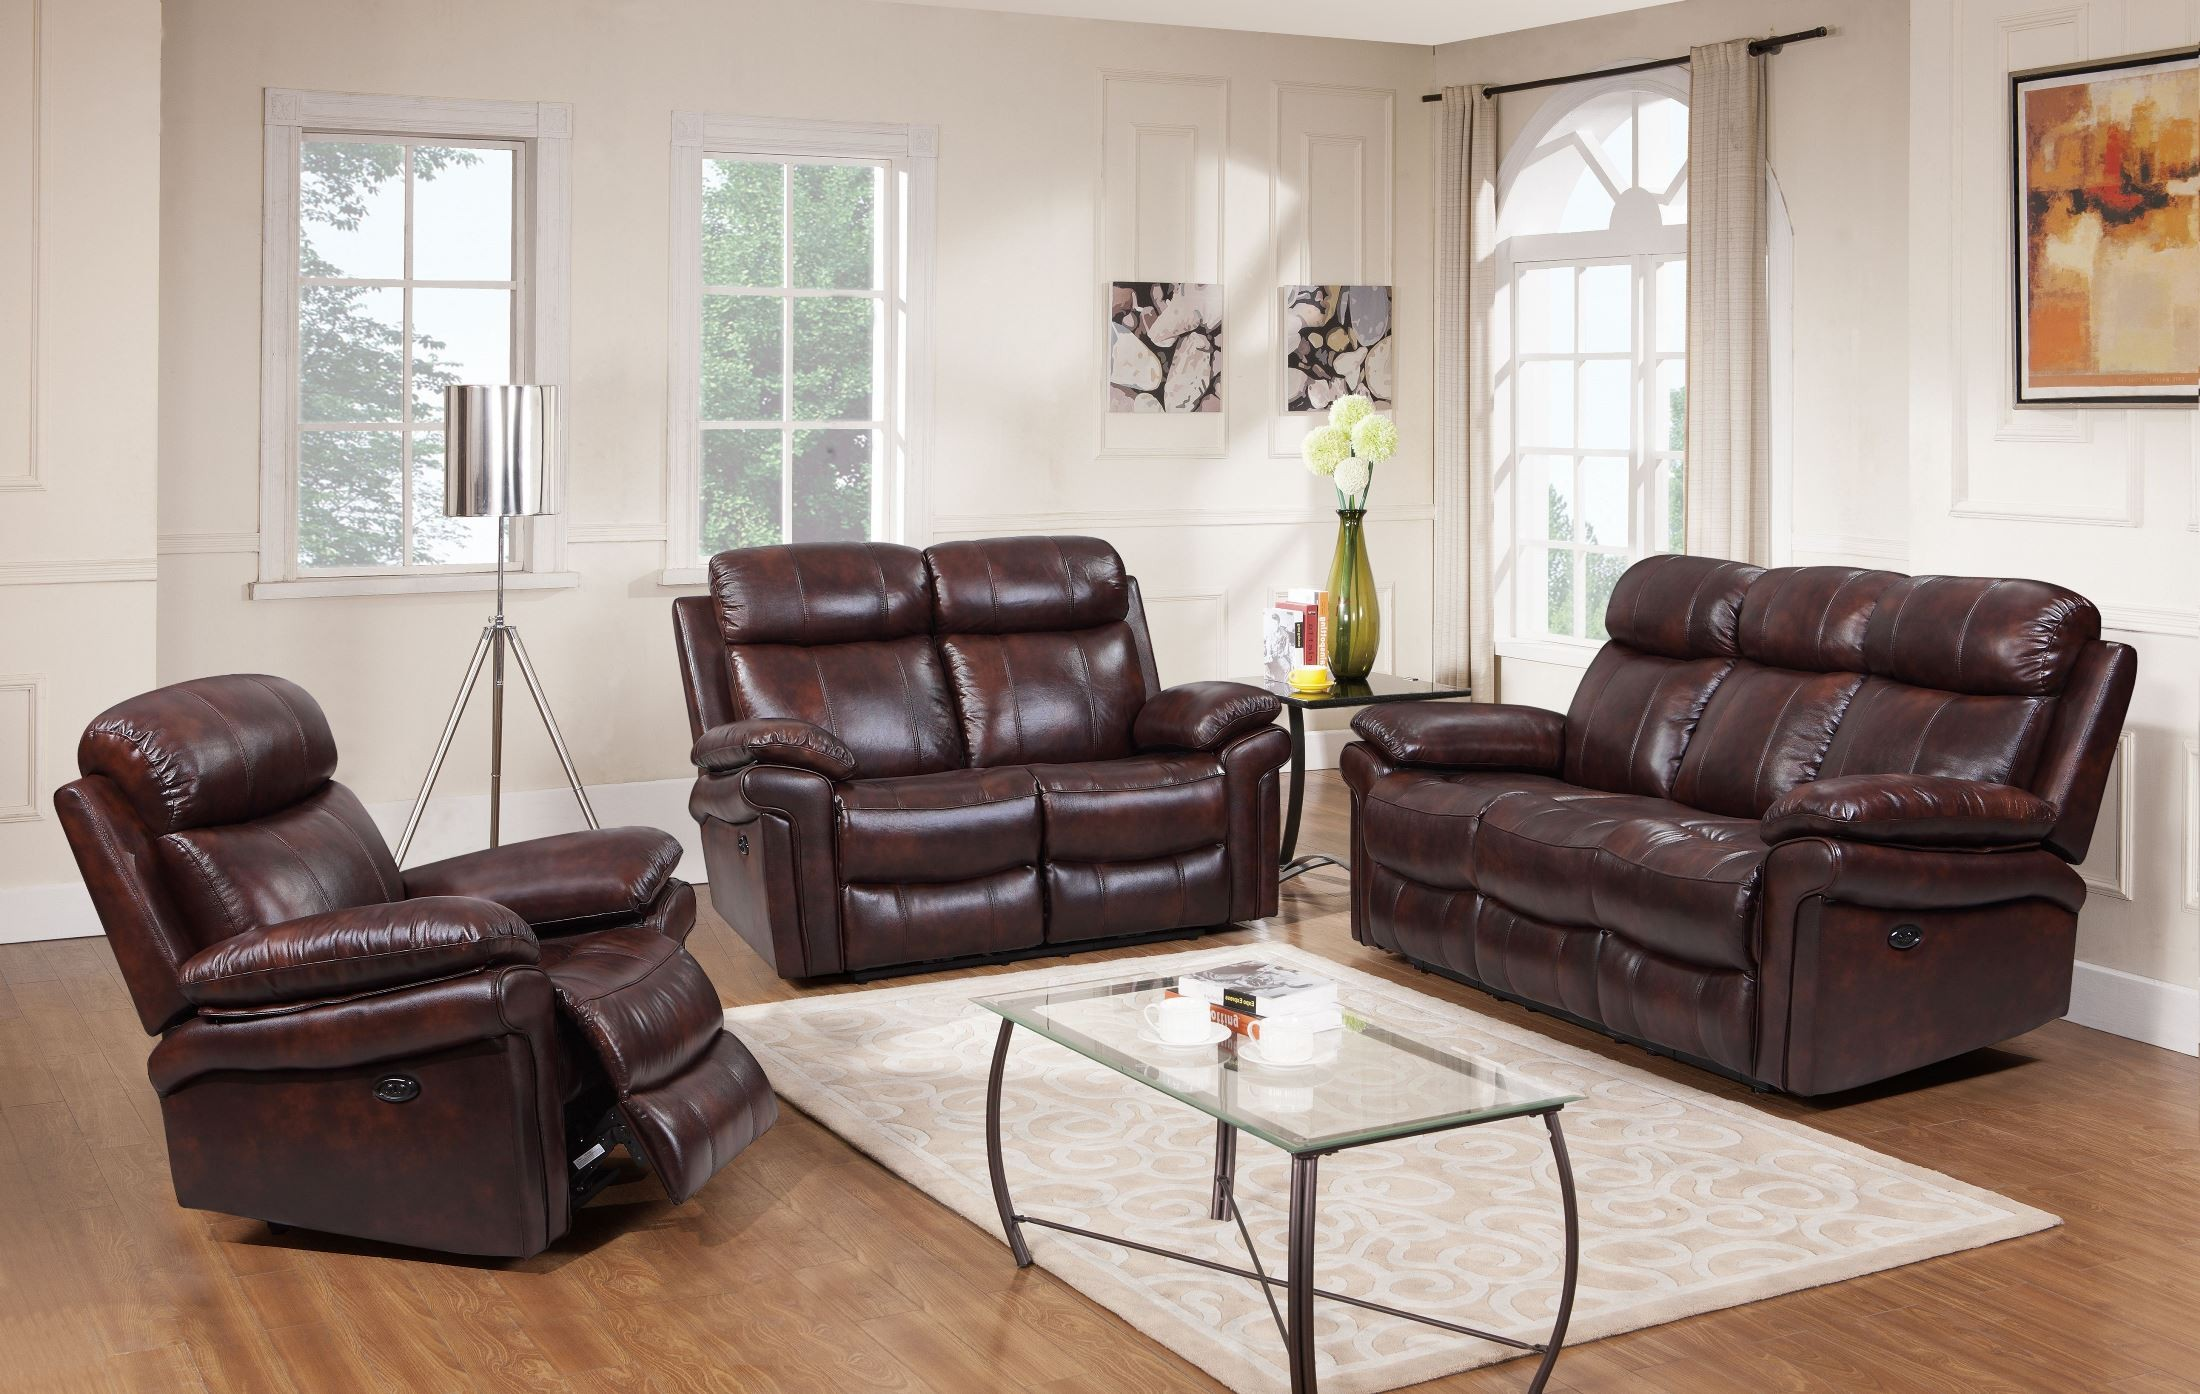 Shae joplin brown leather power reclining living room set for Cheap reclining living room sets